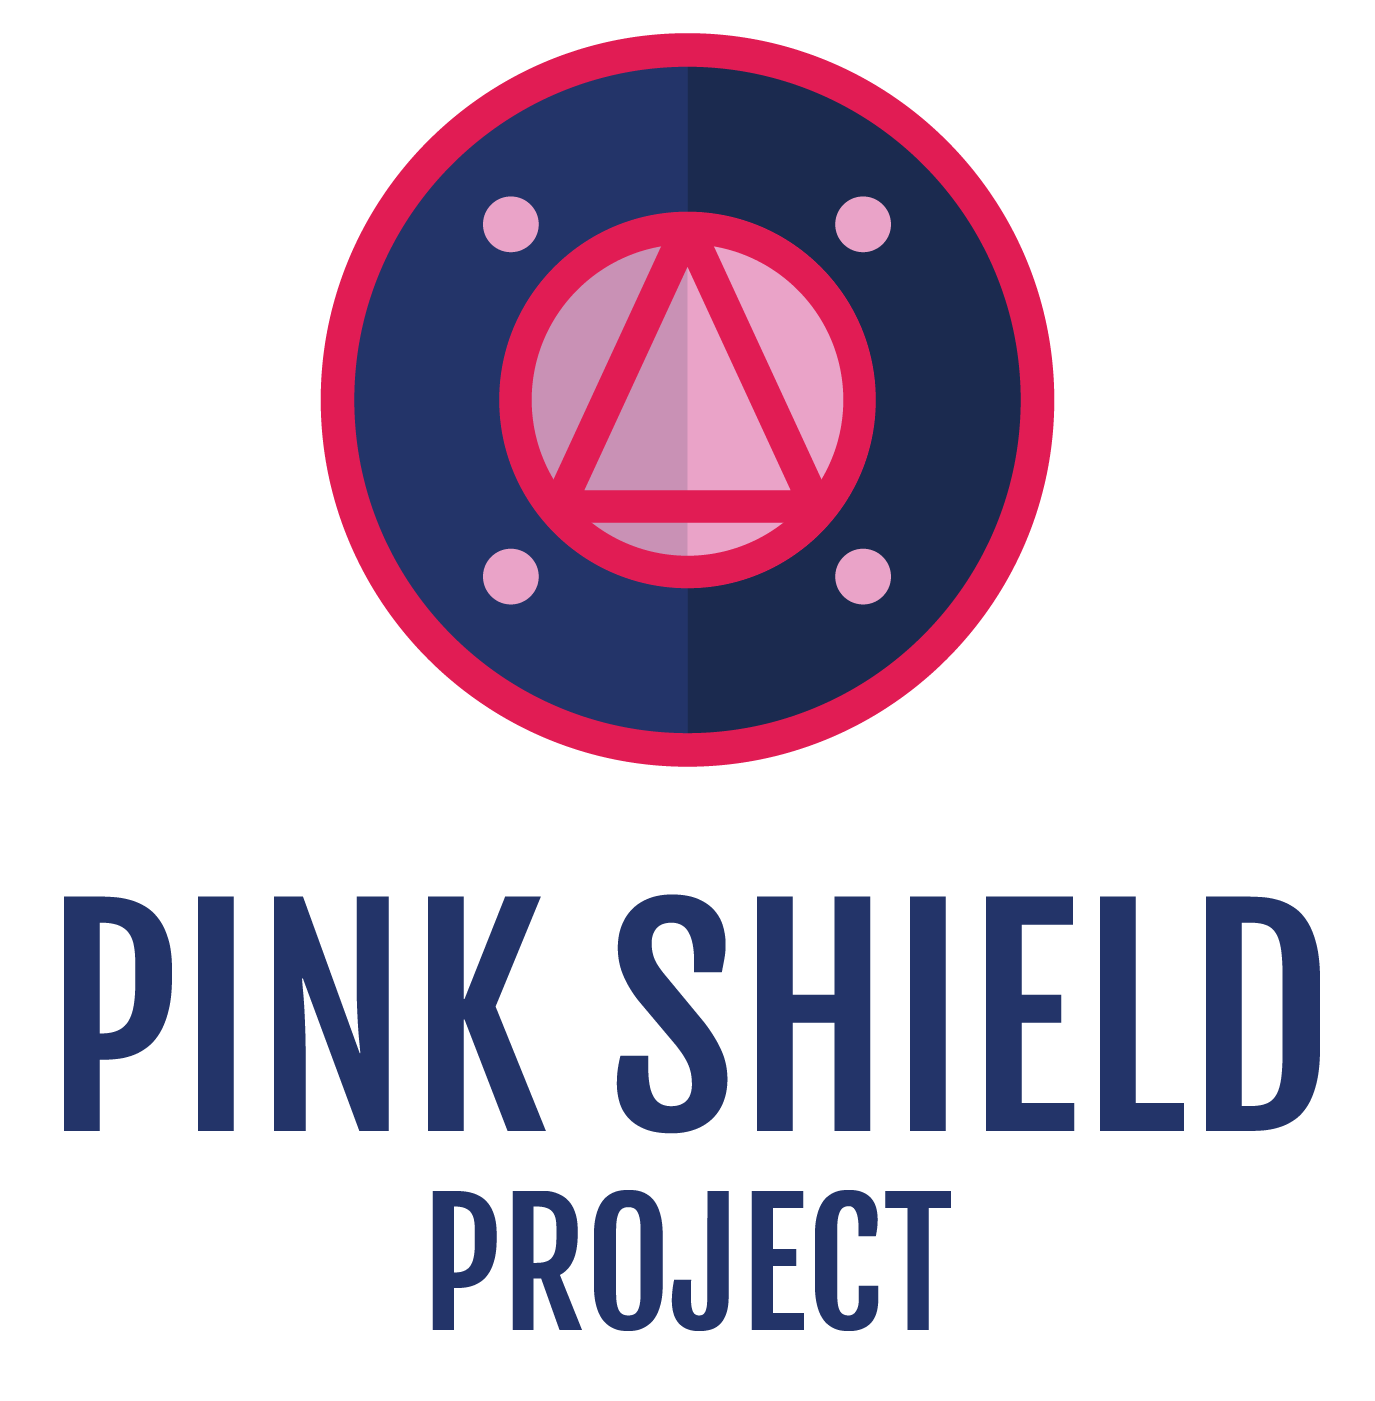 Pink Shield Project